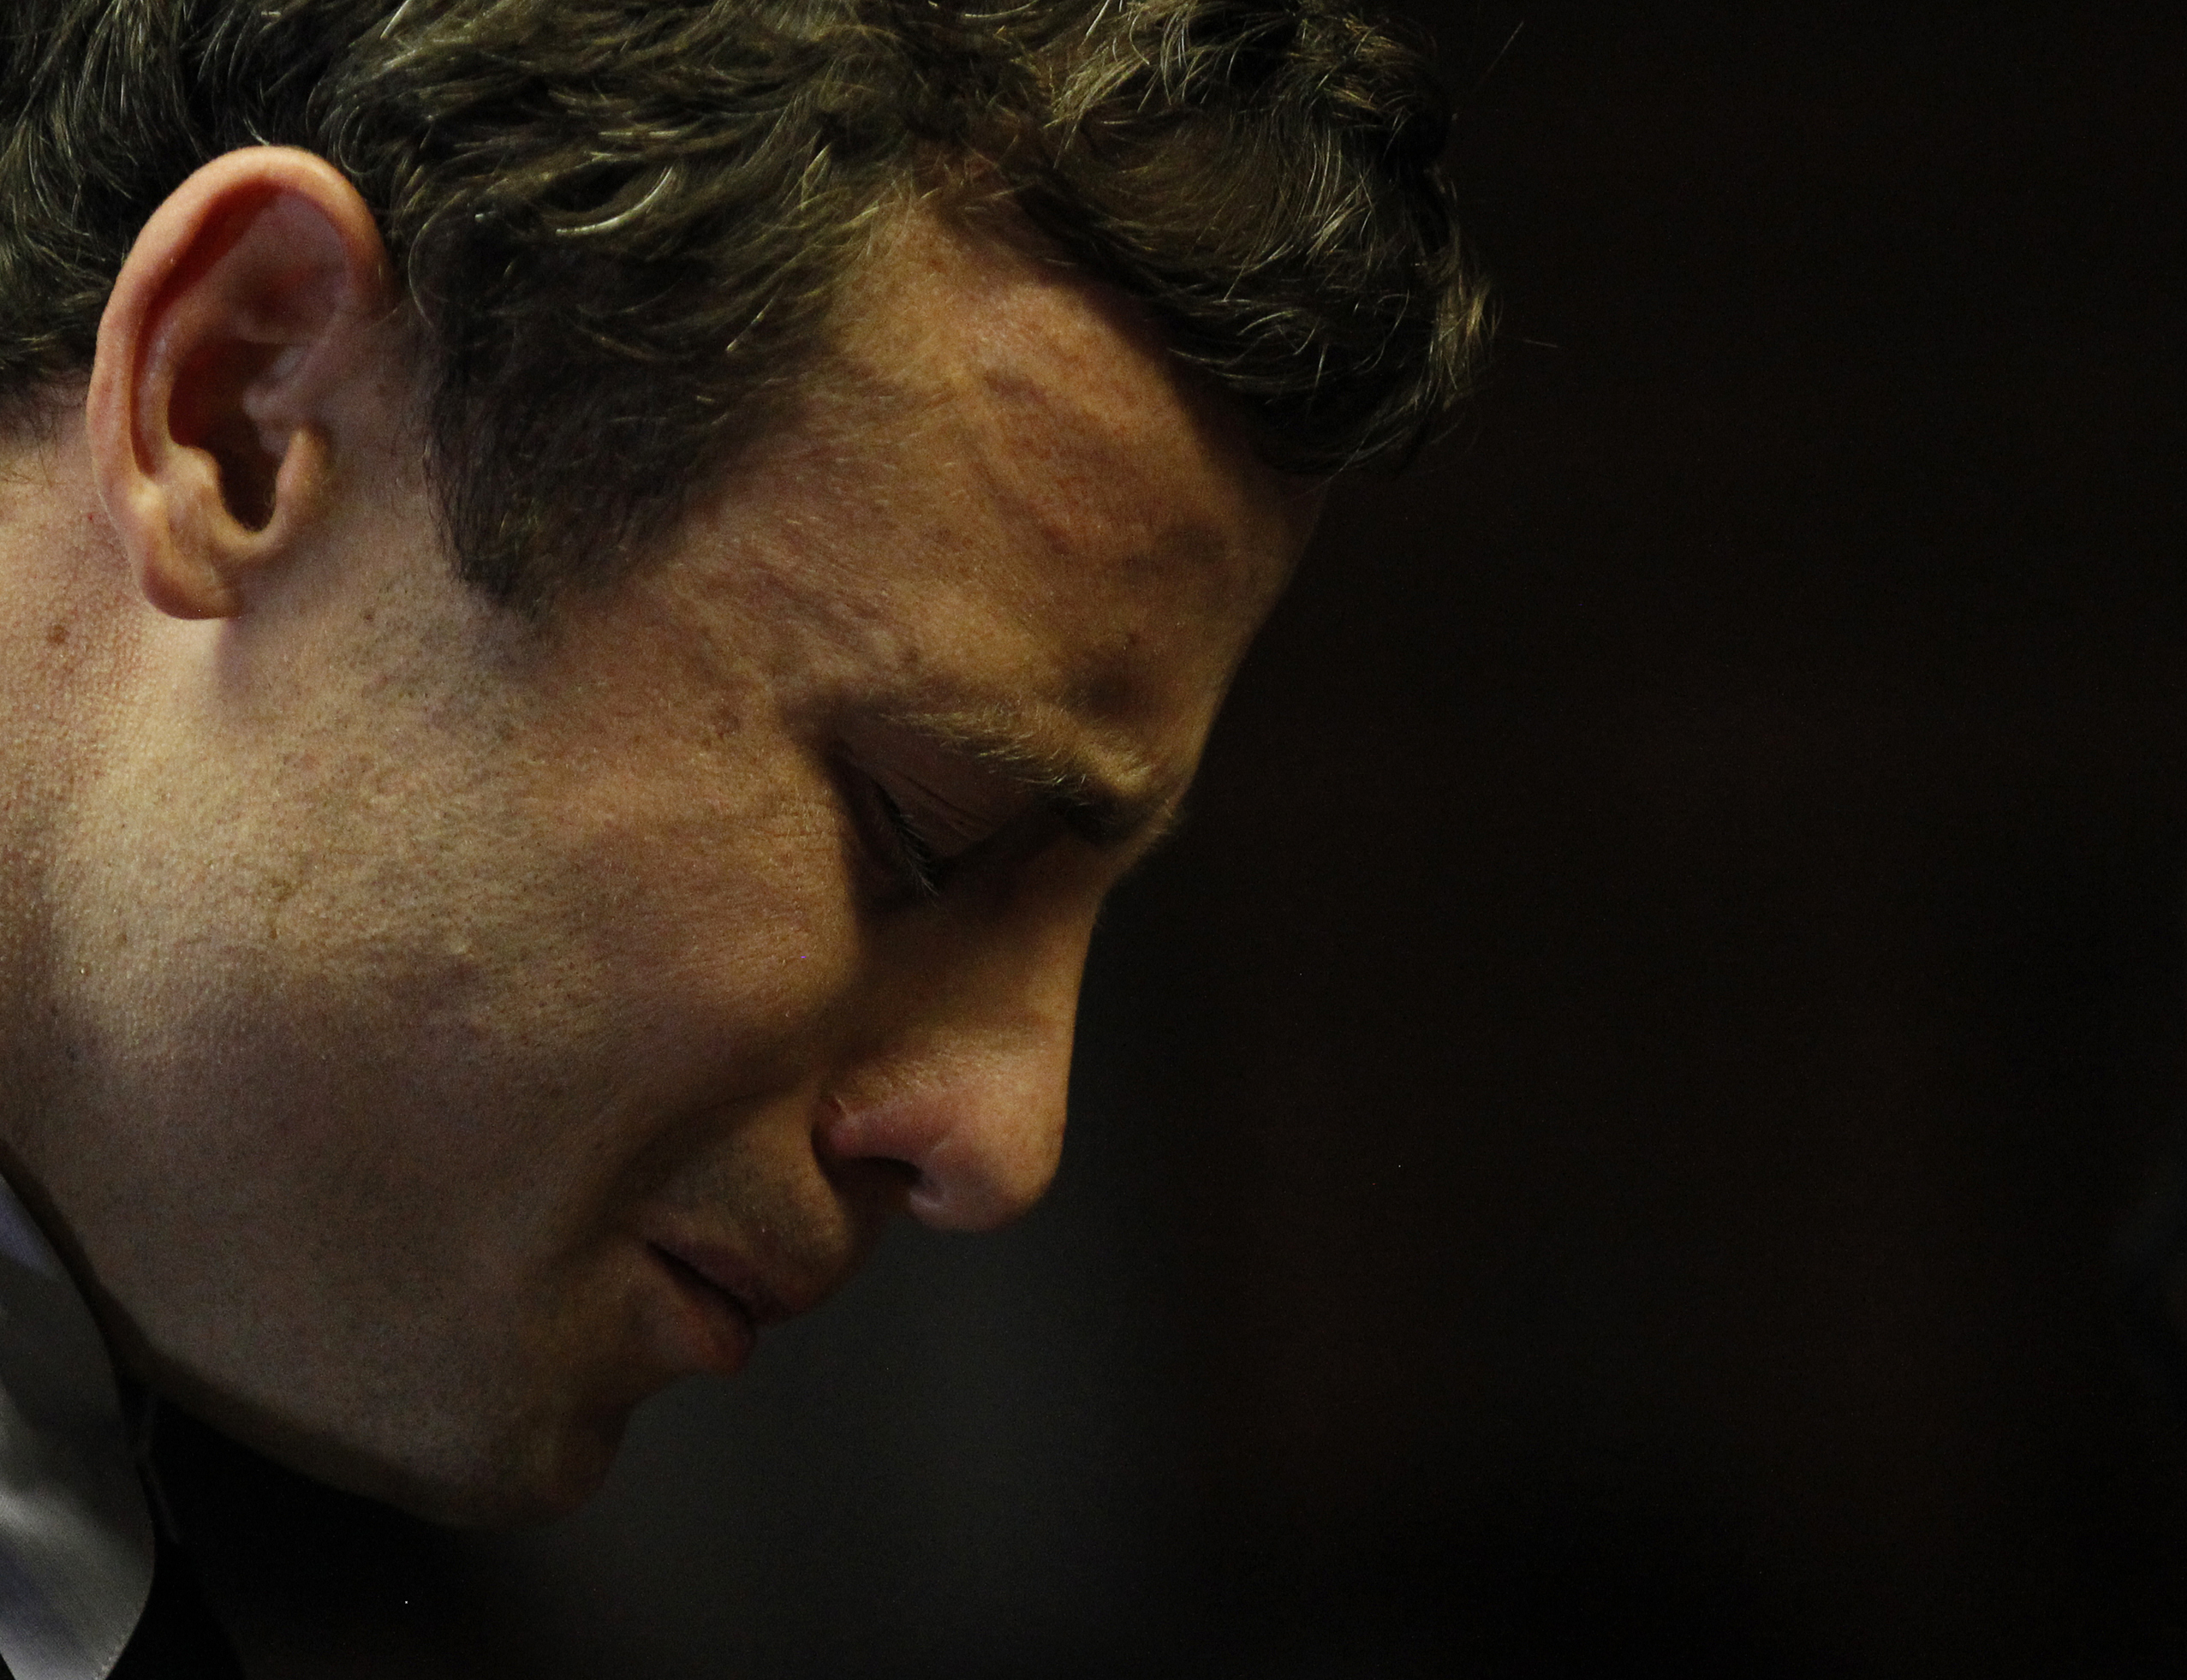 Olympic and Paralympic running star Oscar Pistorius reacts ahead of court proceedings at the Pretoria Magistrates court, August 19, 2013. Pistorius, accused of murdering his model girlfriend, prayed and wiped away tears in a court hearing on Monday which set a March 3, 2014 start date for his trial. REUTERS/Siphiwe Sibeko